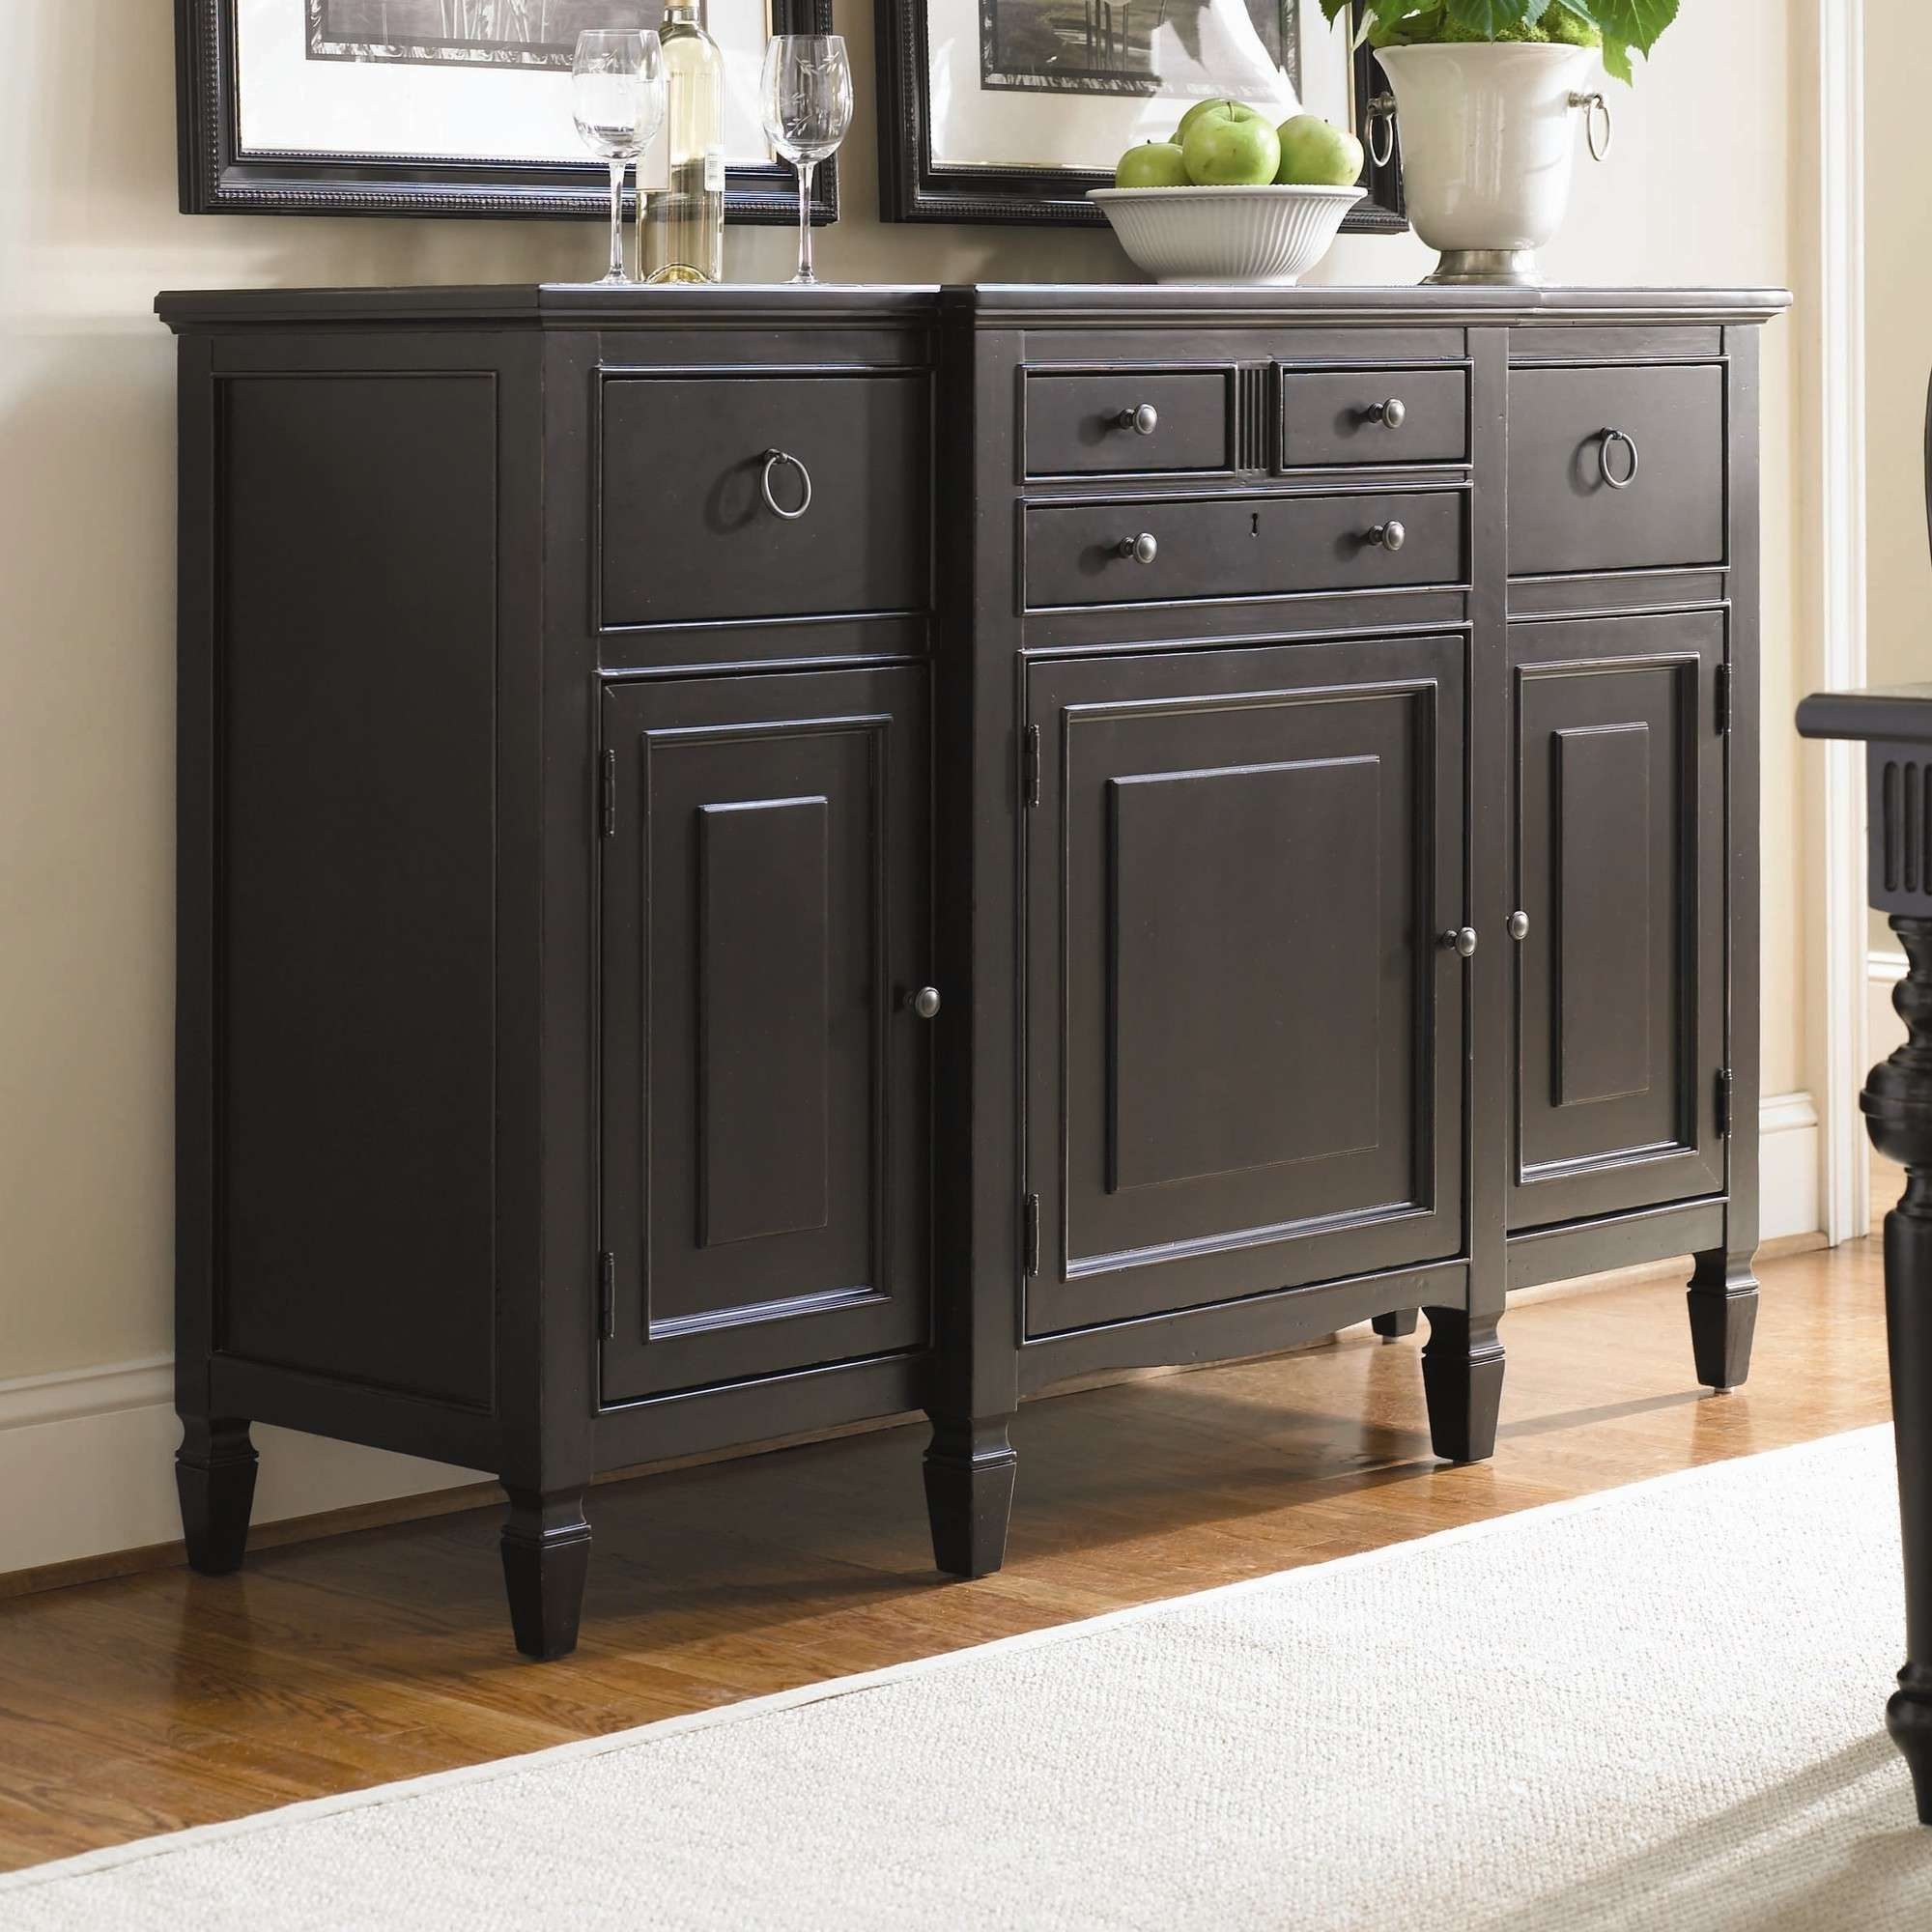 Beautiful Sideboard Buffet Furniture – Bjdgjy Pertaining To Sideboards Buffet Tables (View 7 of 20)